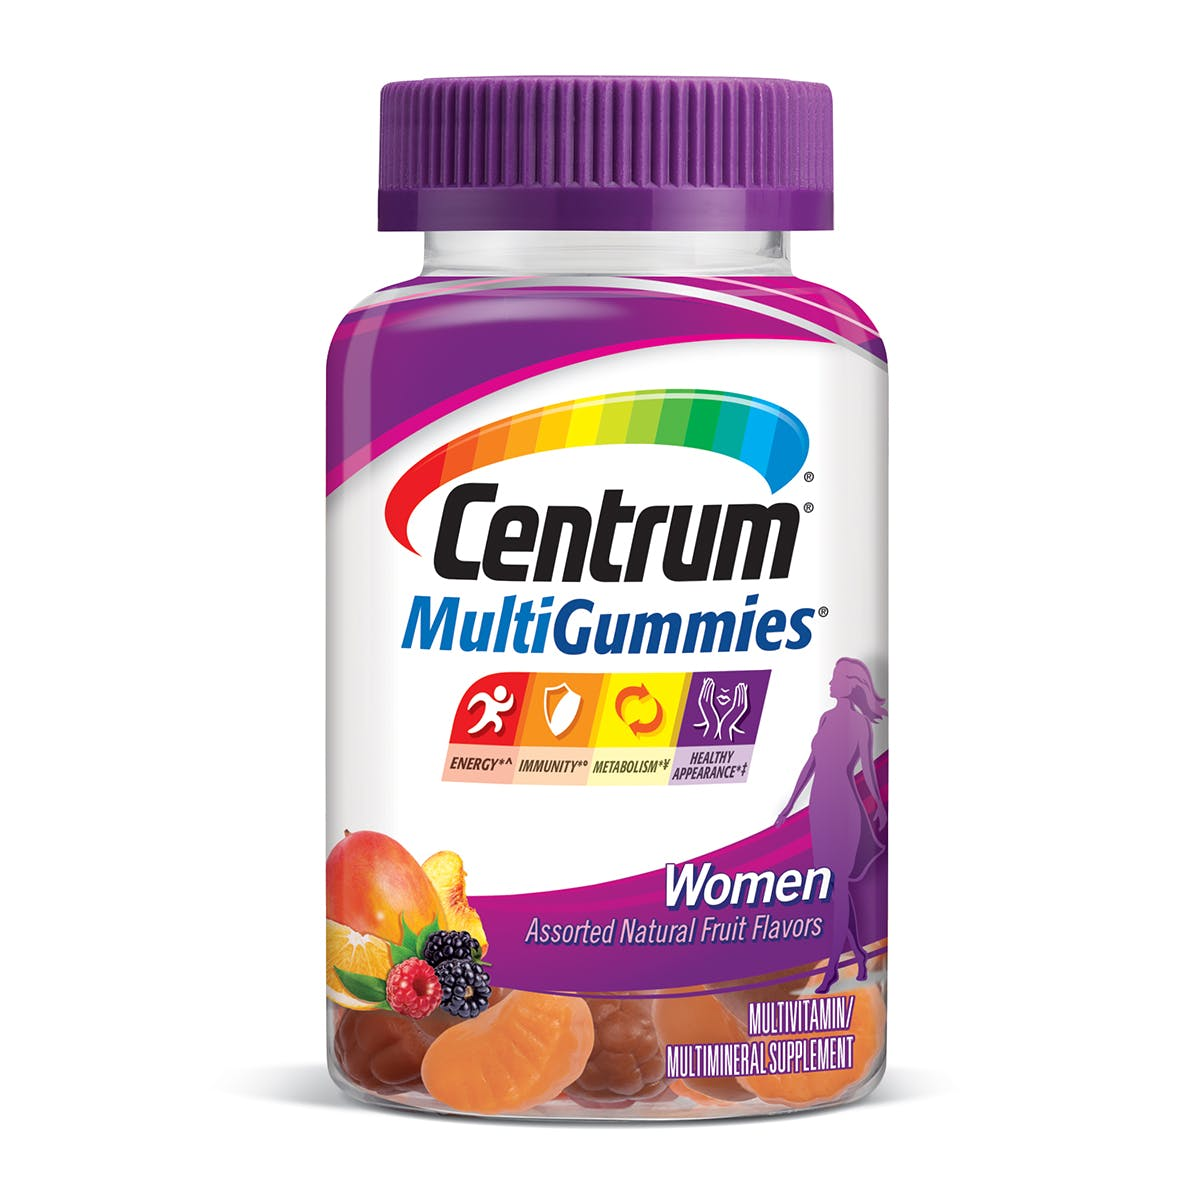 Bottle of Centrum MultiGummies Women vitamins